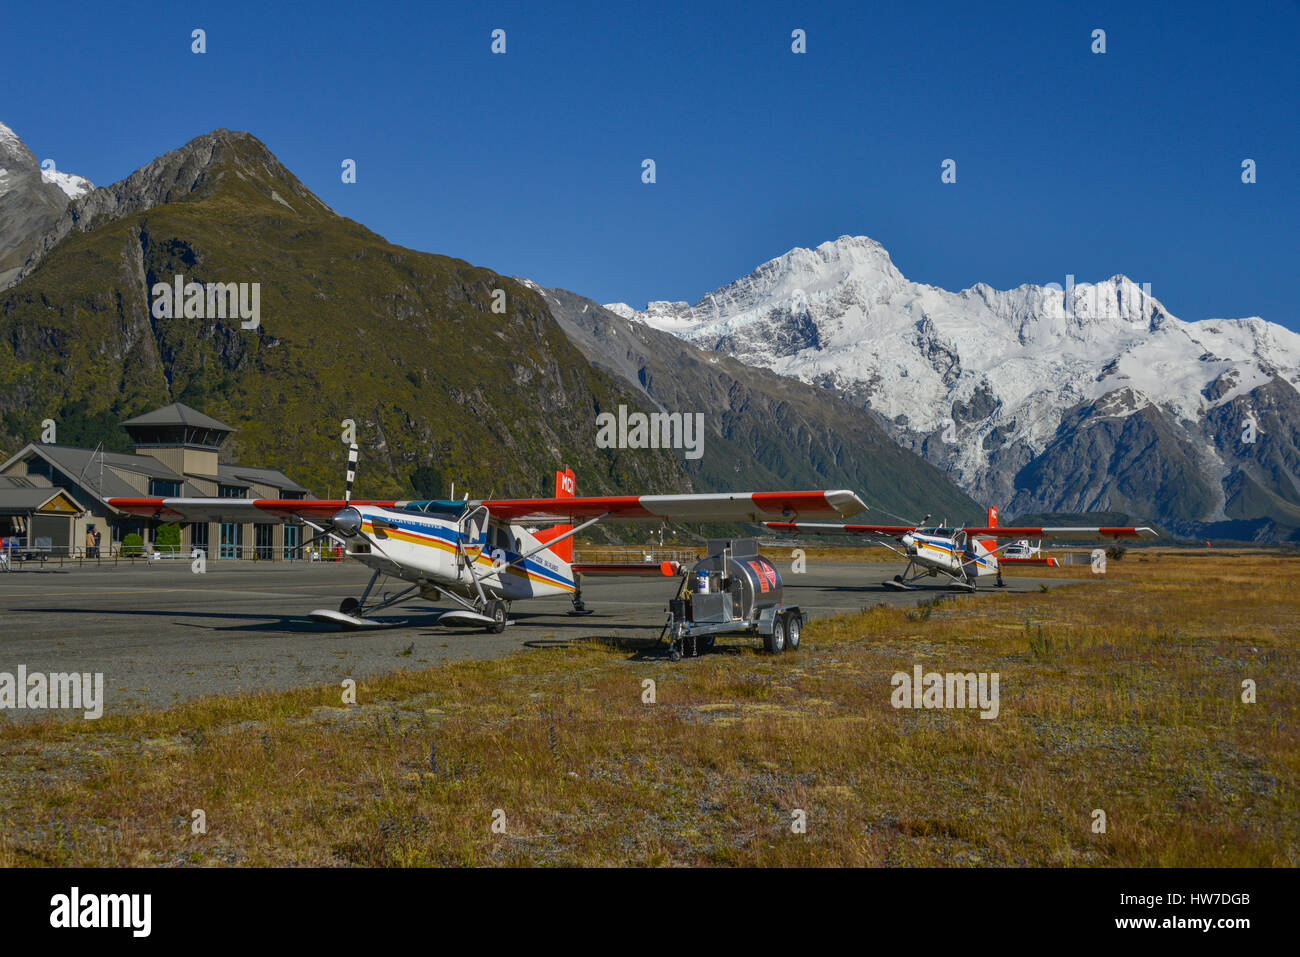 Pilatus PC6 aircraft at airfield, Mount Cook National Park, New Zealand - Stock Image